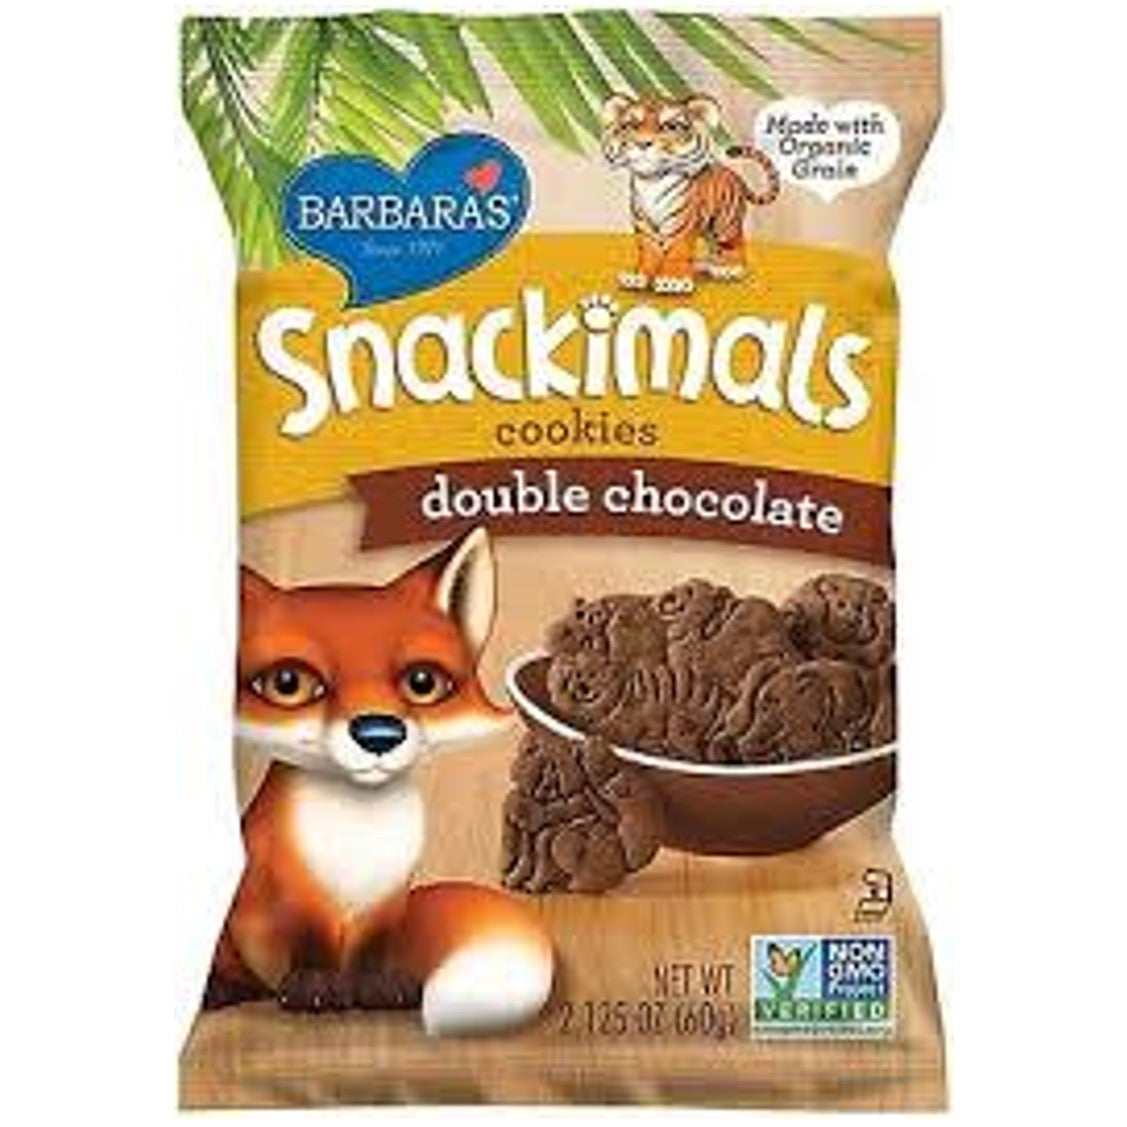 Barbara's Bakery Snackimals Animal Cookies - Double Chocolate, 60g.